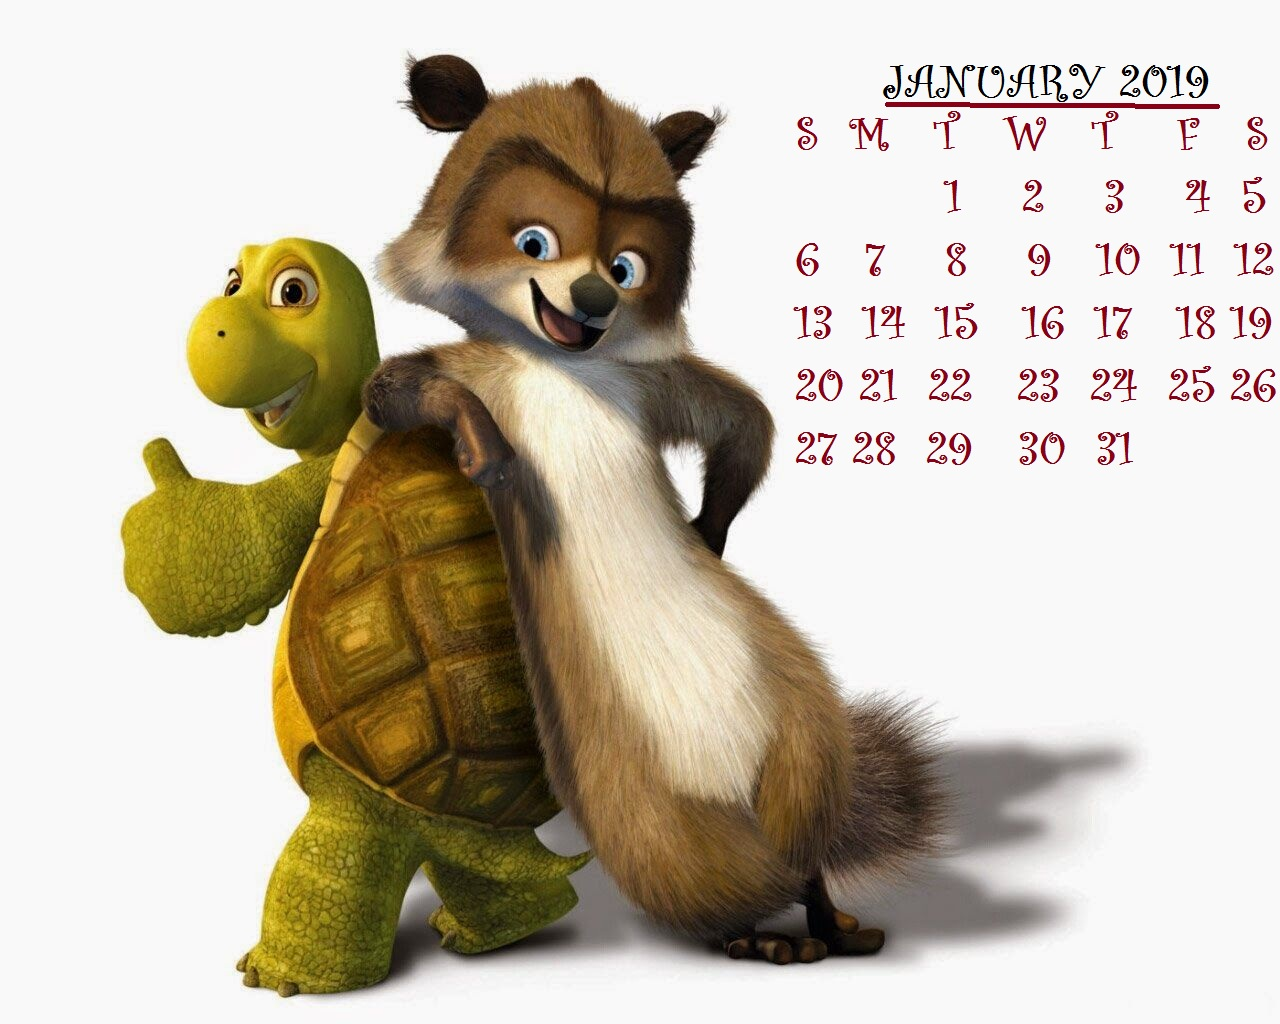 January 2019 Desktop Calendar Wallpaper Animal Friends